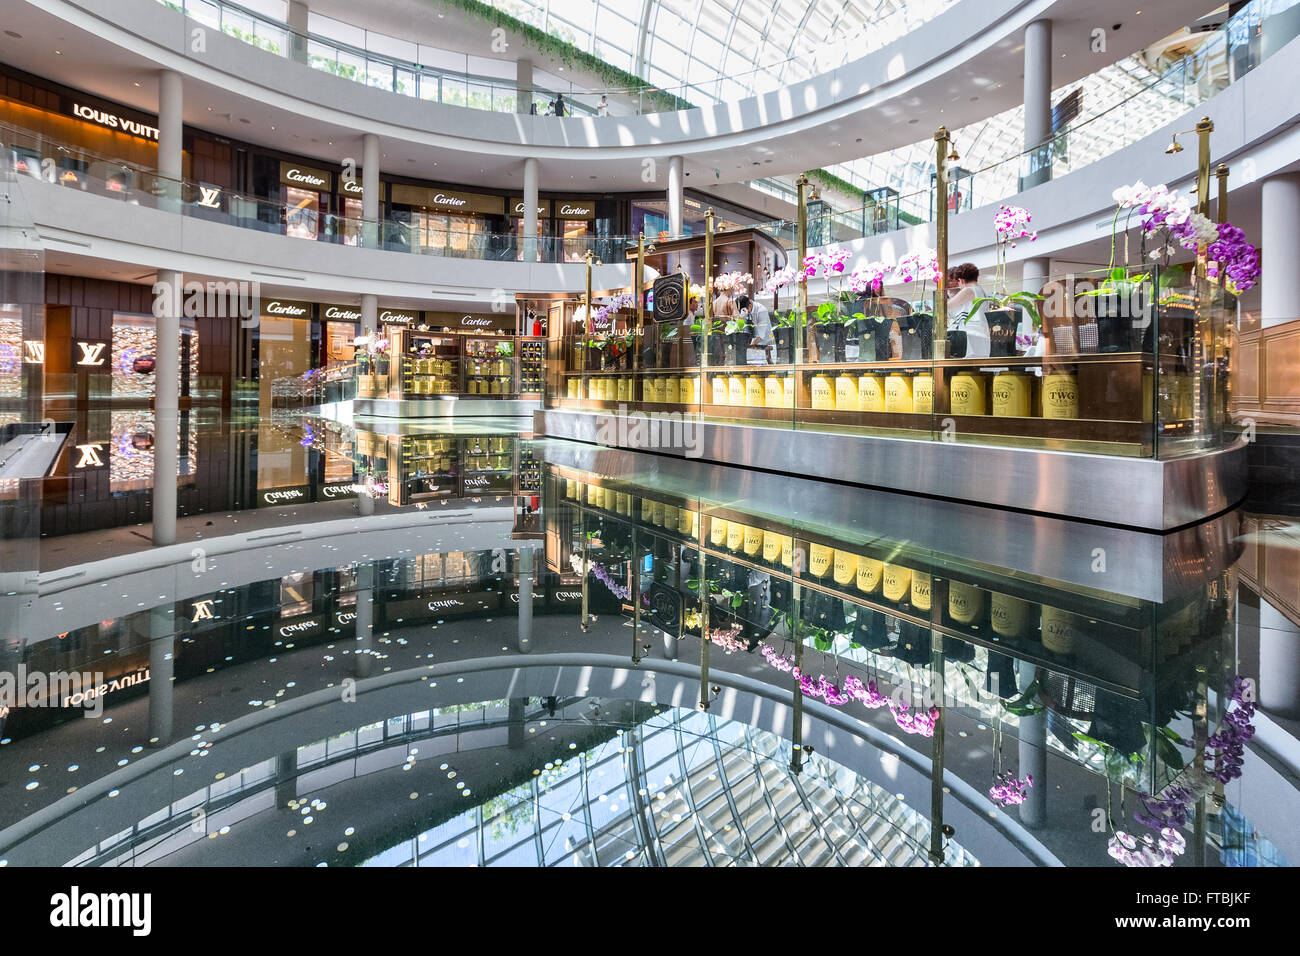 Shoppes at Marina Bay Sands in Singapore - Stock Image